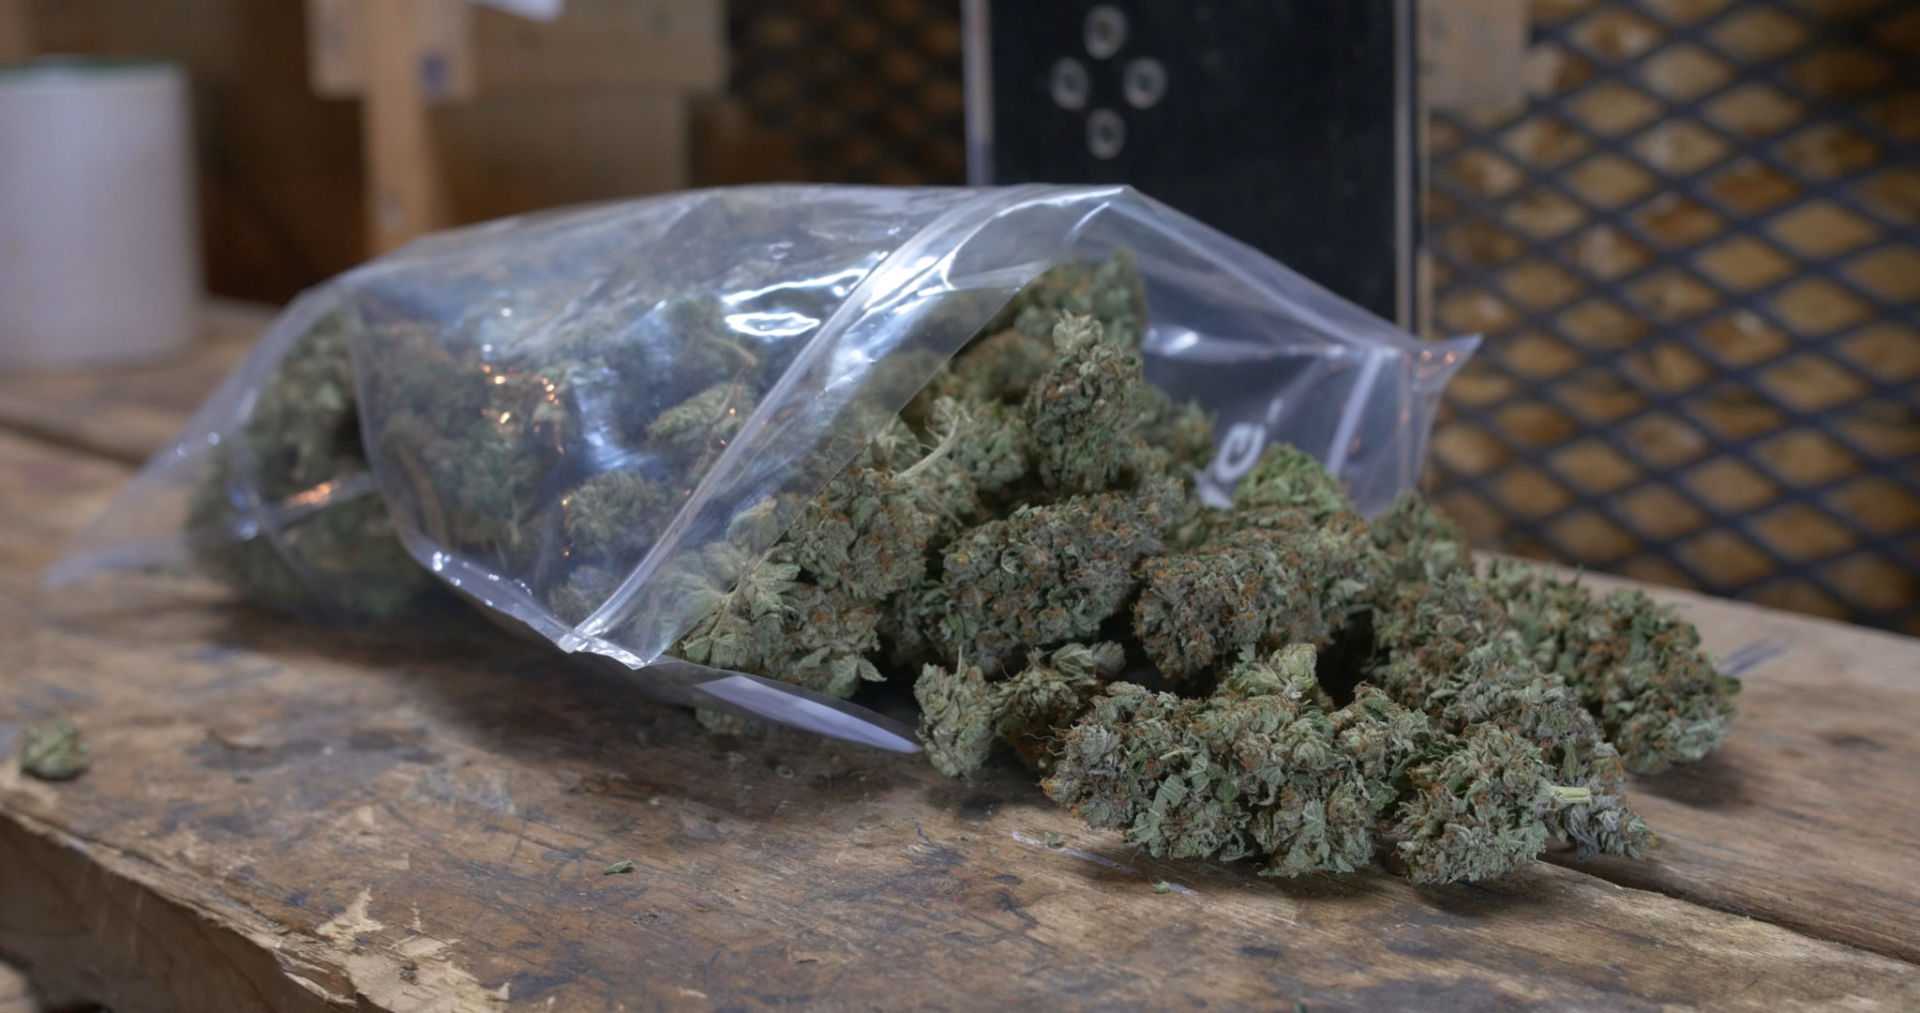 list-cannabis-dispensaries-affected-civil-unrest-grows-featured-2048×1080